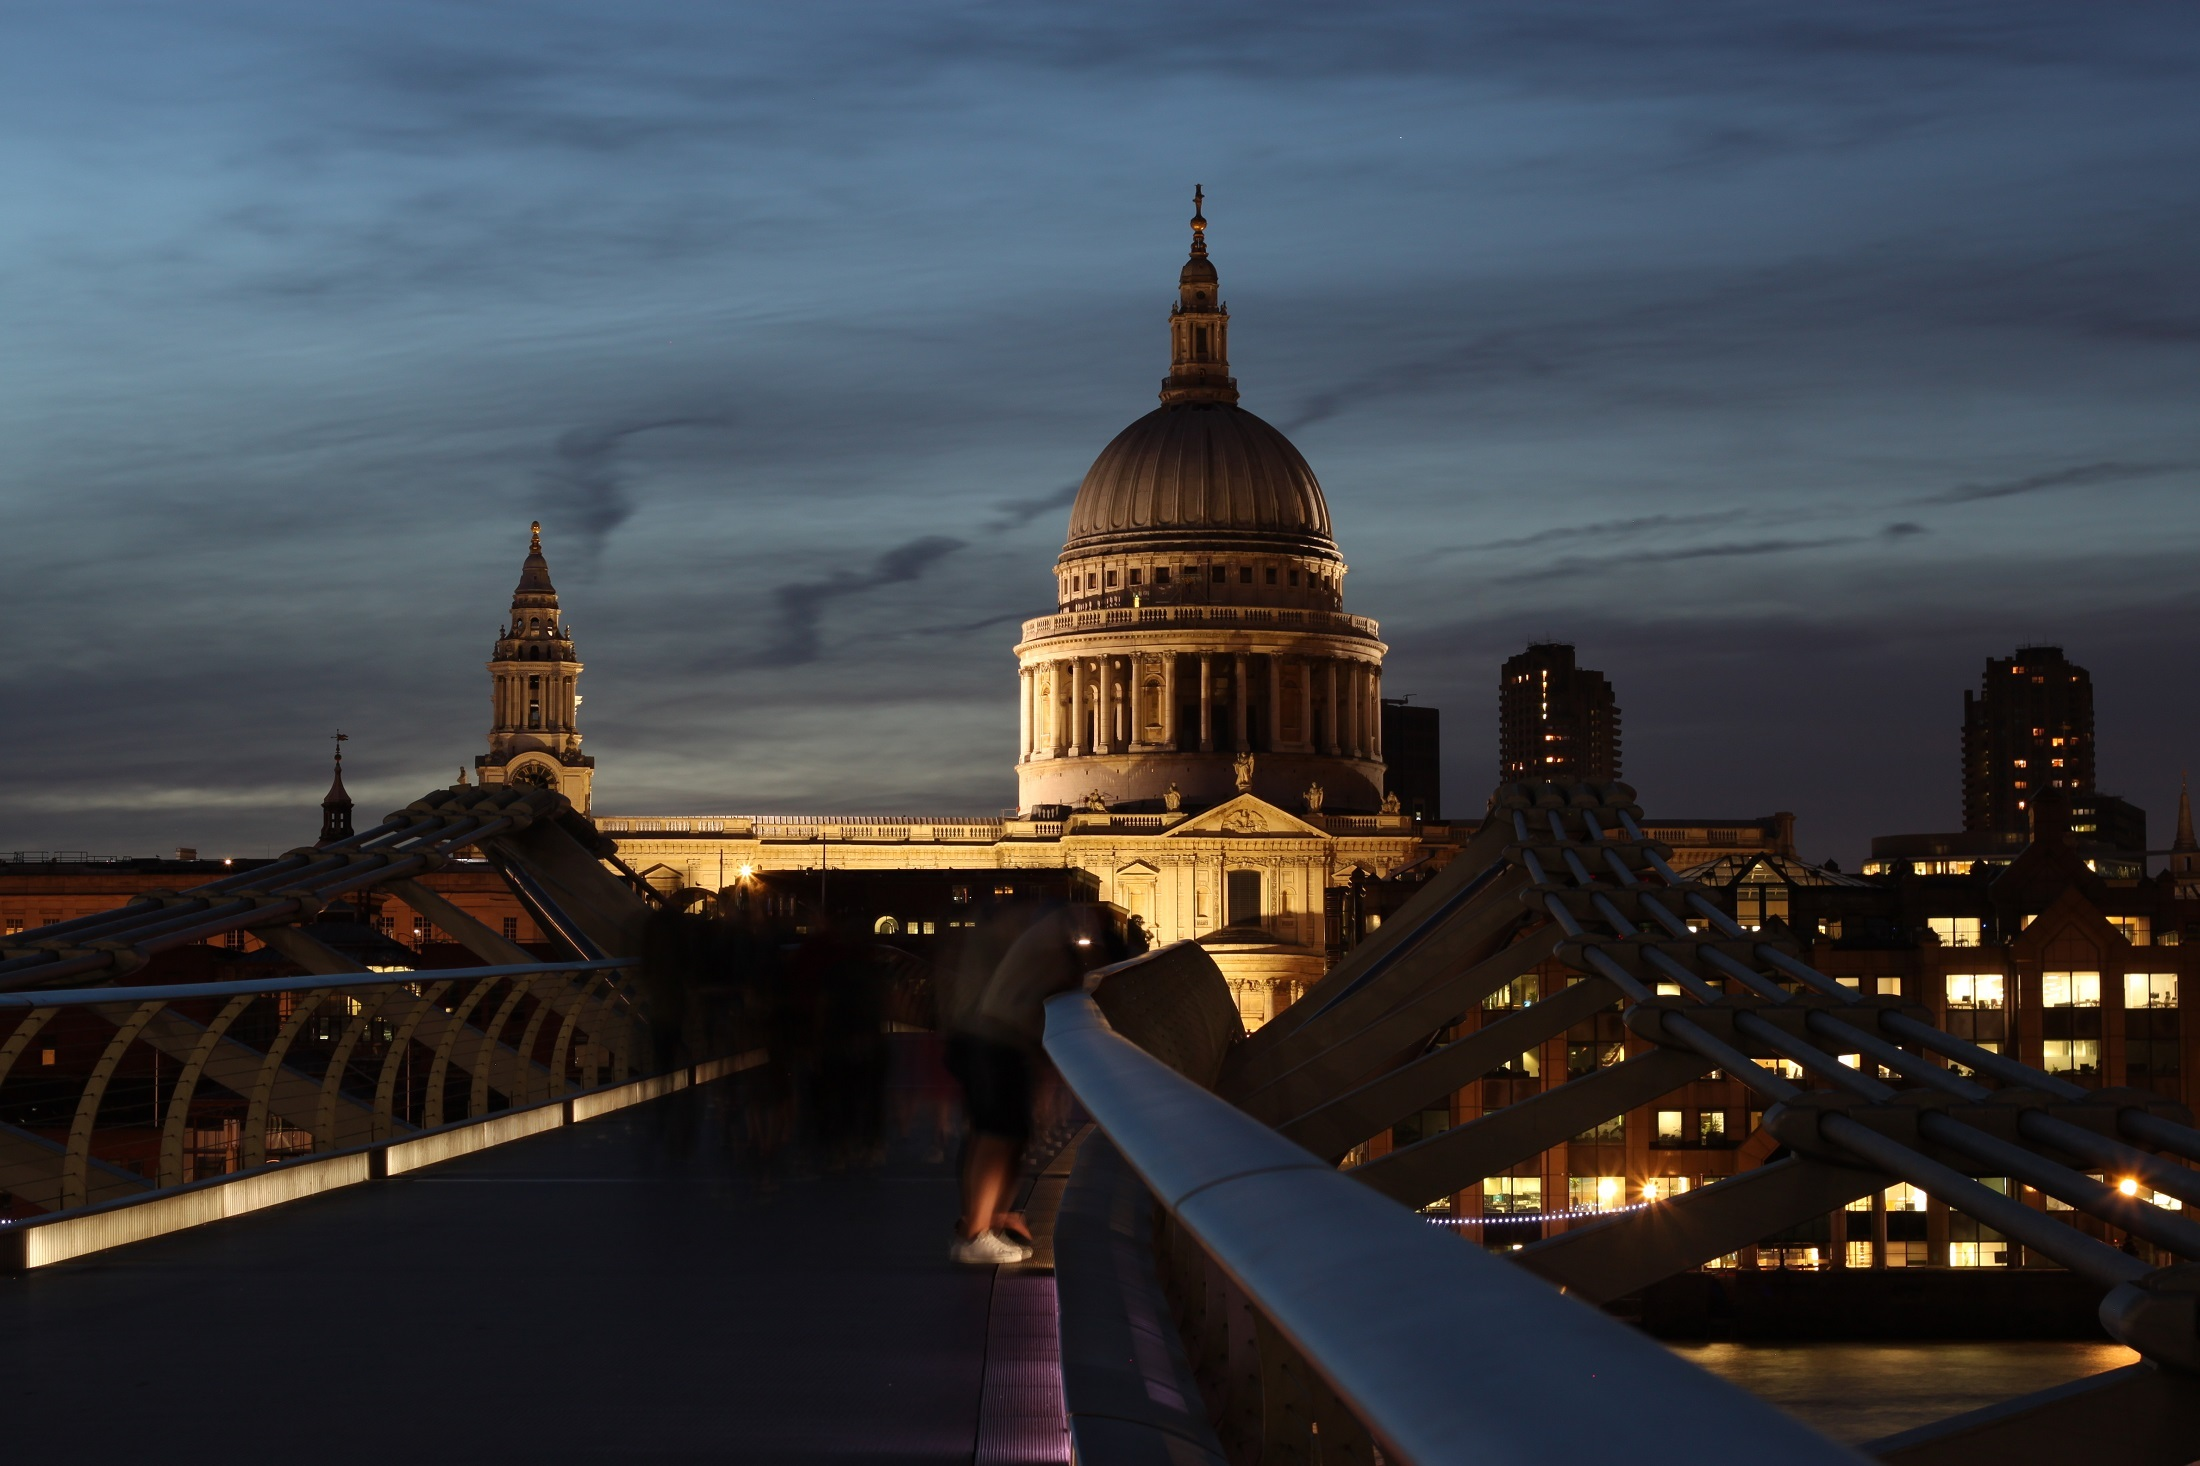 St Pauls Cathedral, Architecture, Building, Cathedral, Church, HQ Photo